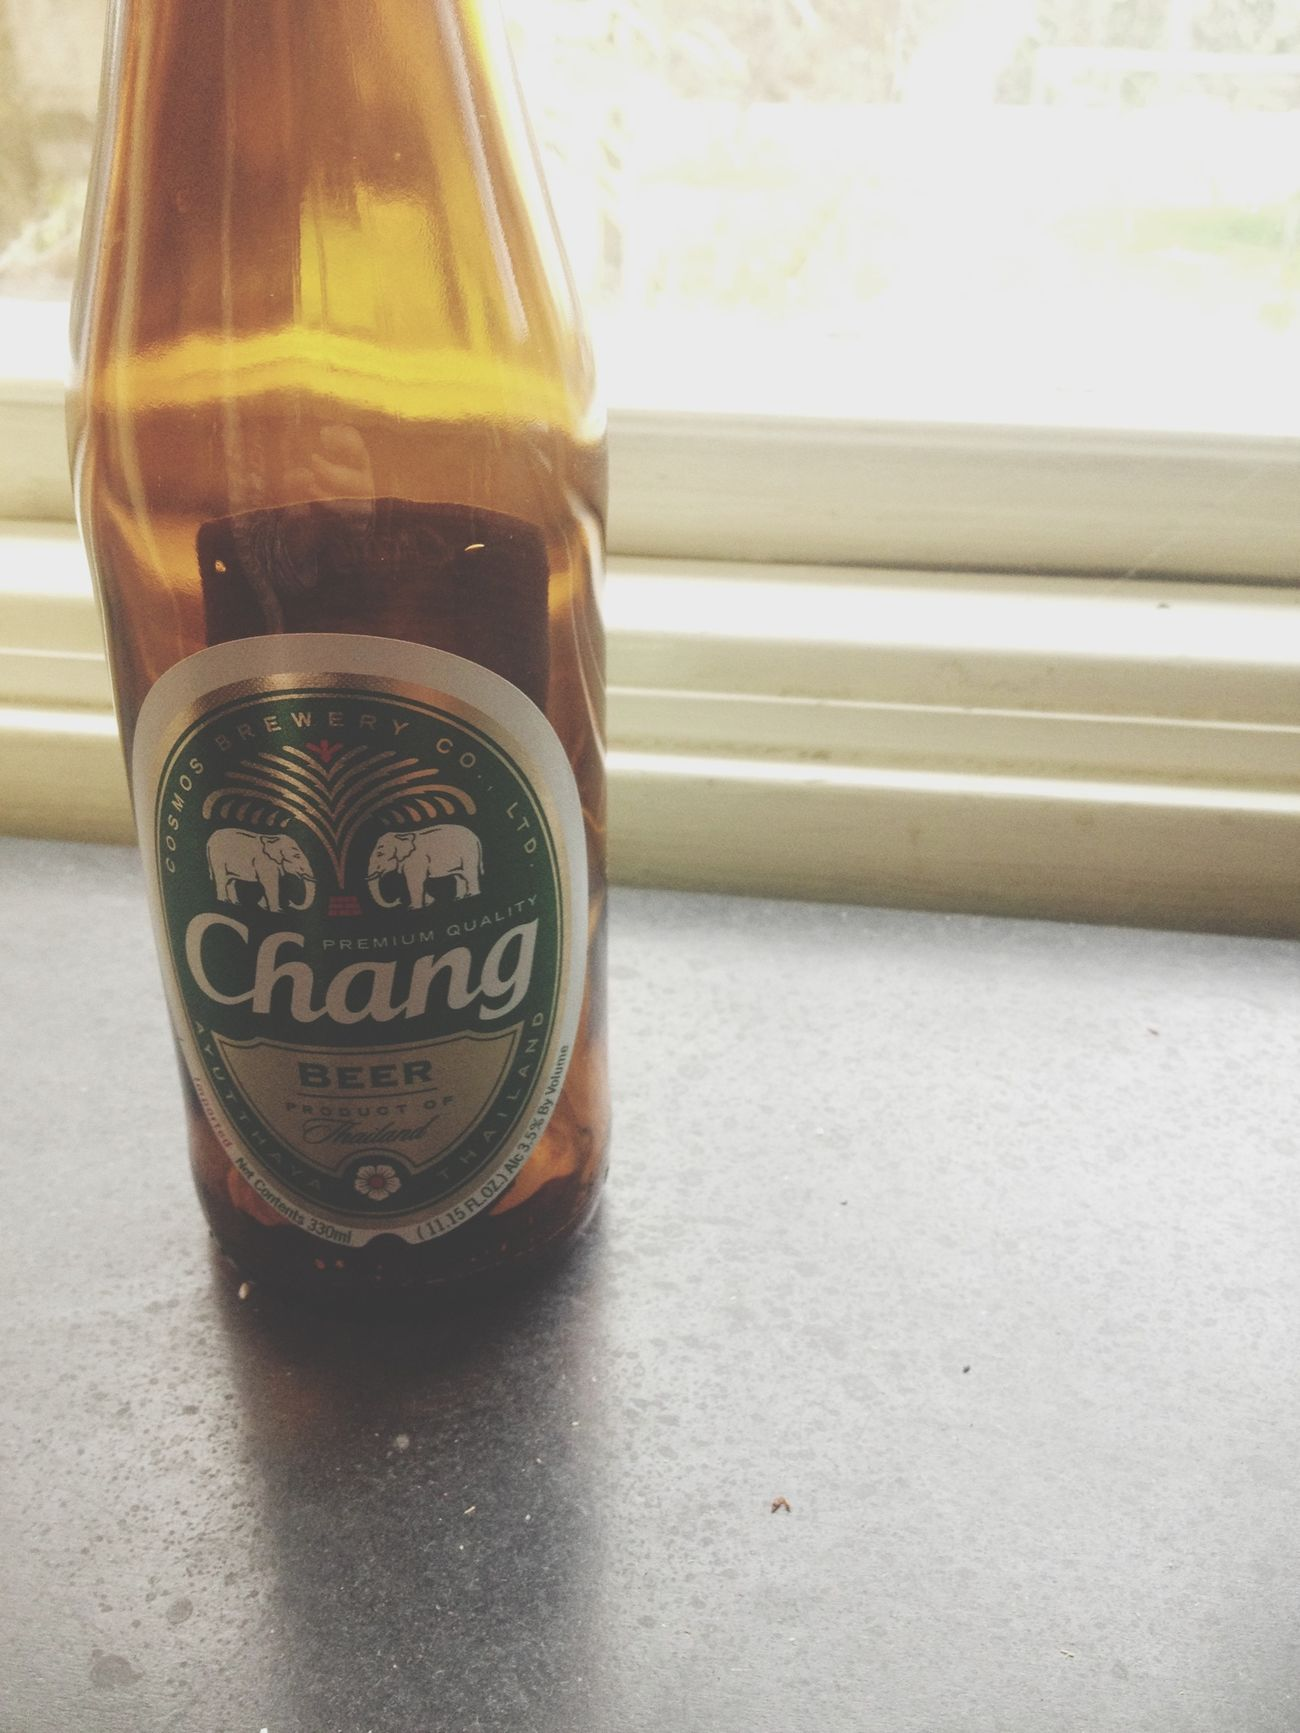 18th bday today. celebrated by buying chang beer